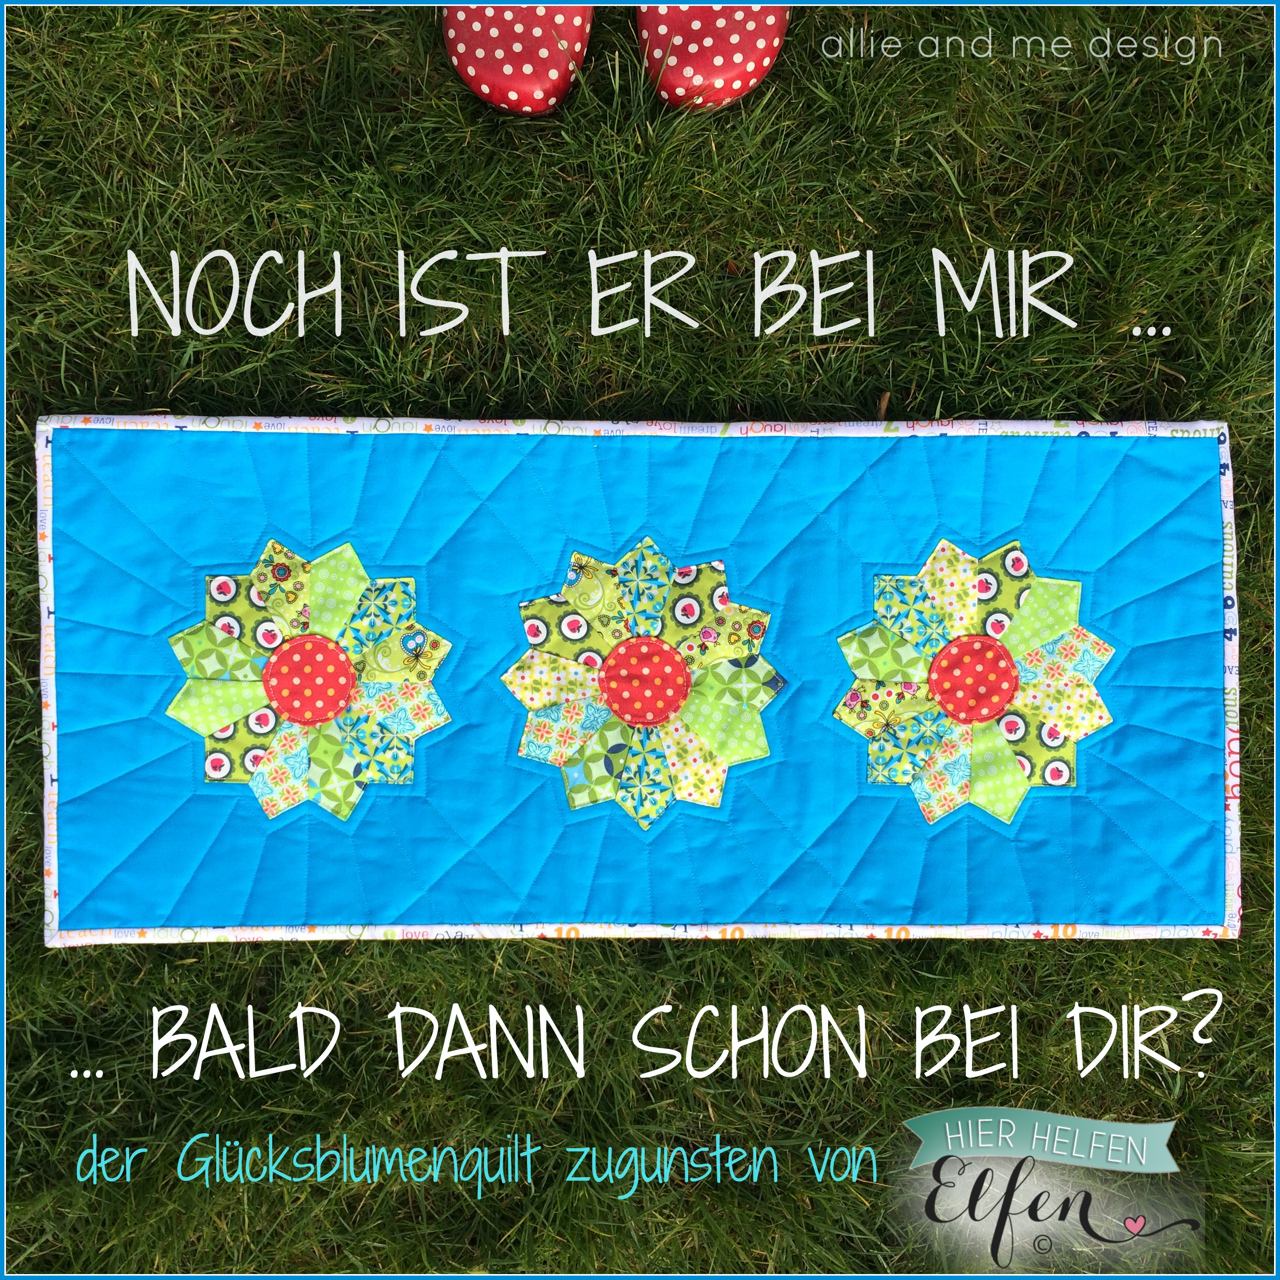 http://allie-and-me-design.blogspot.de/2015/04/ein-glucksblumenquilt-fur-dich-und.html